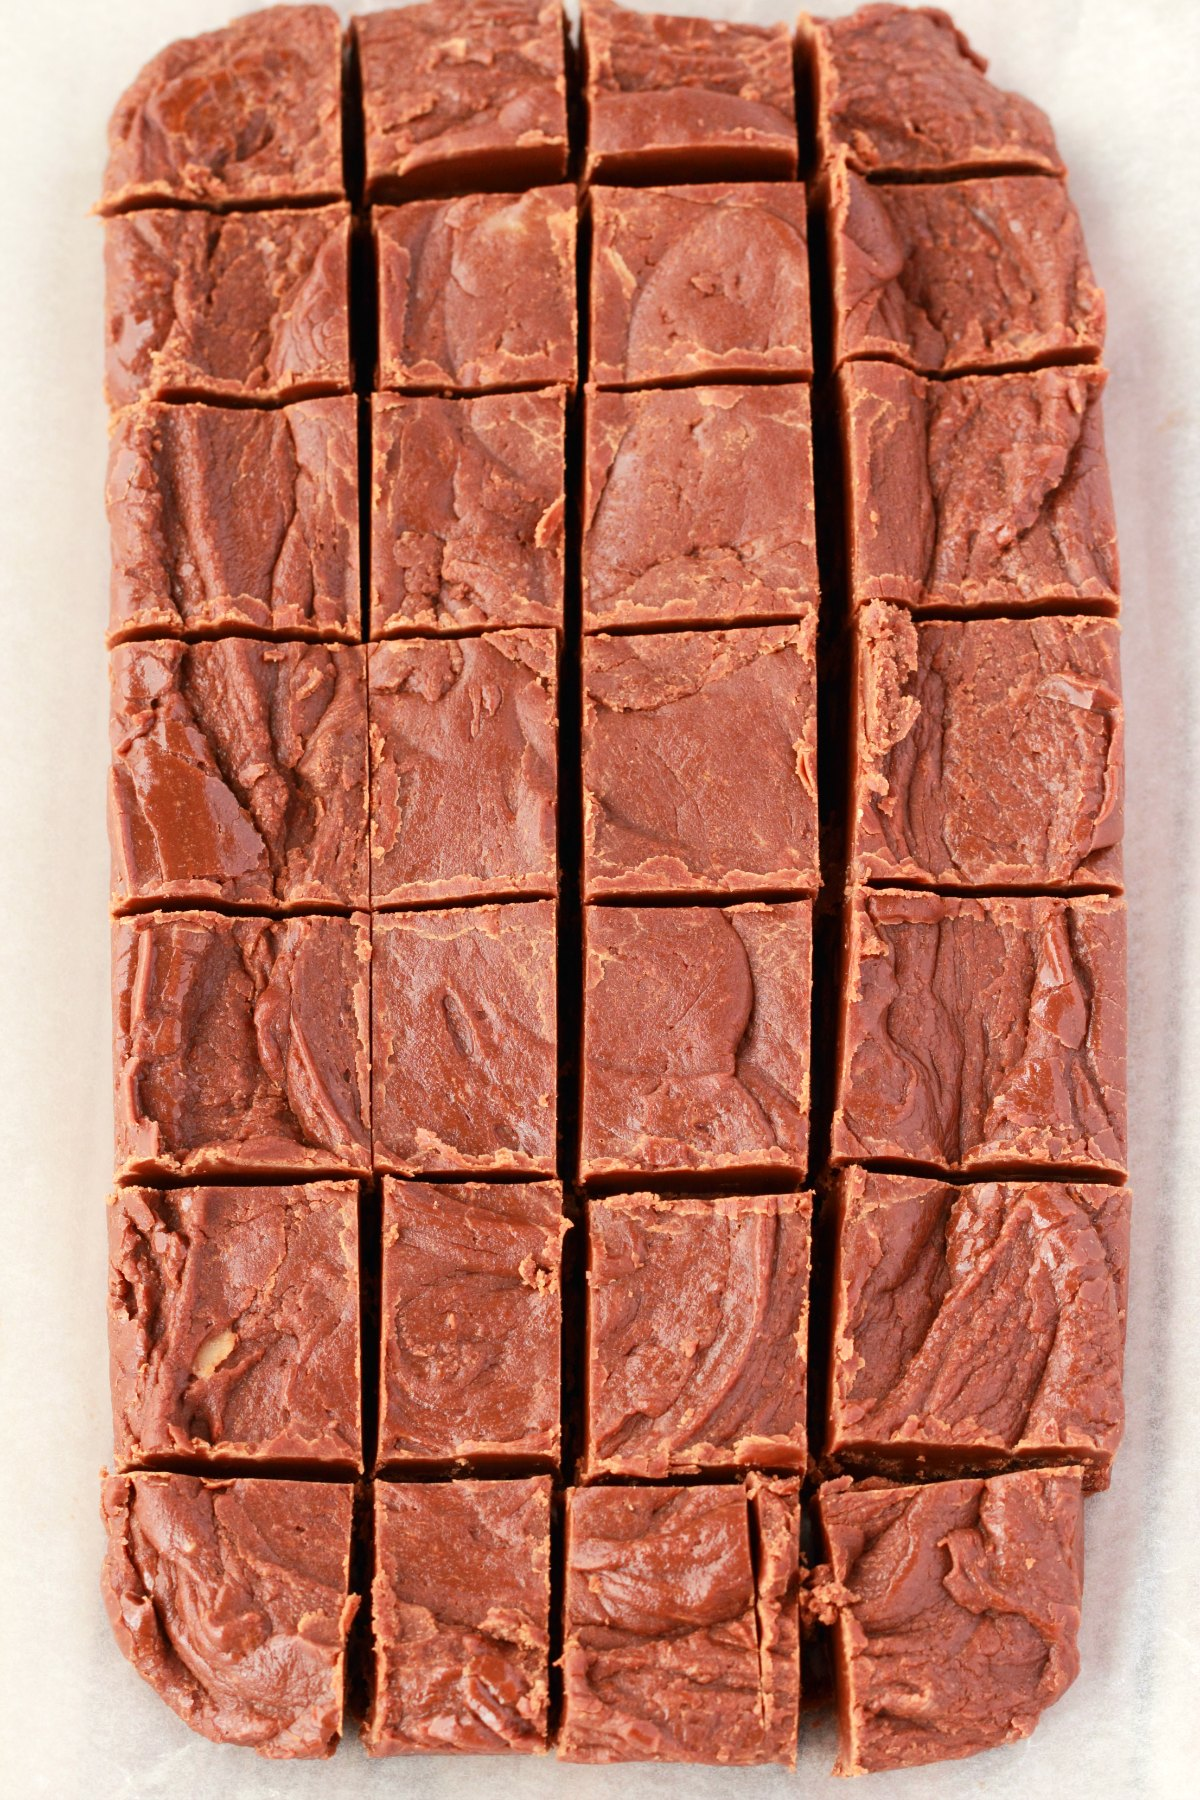 Dairy Free Fudge cut into squares, on parchment paper.